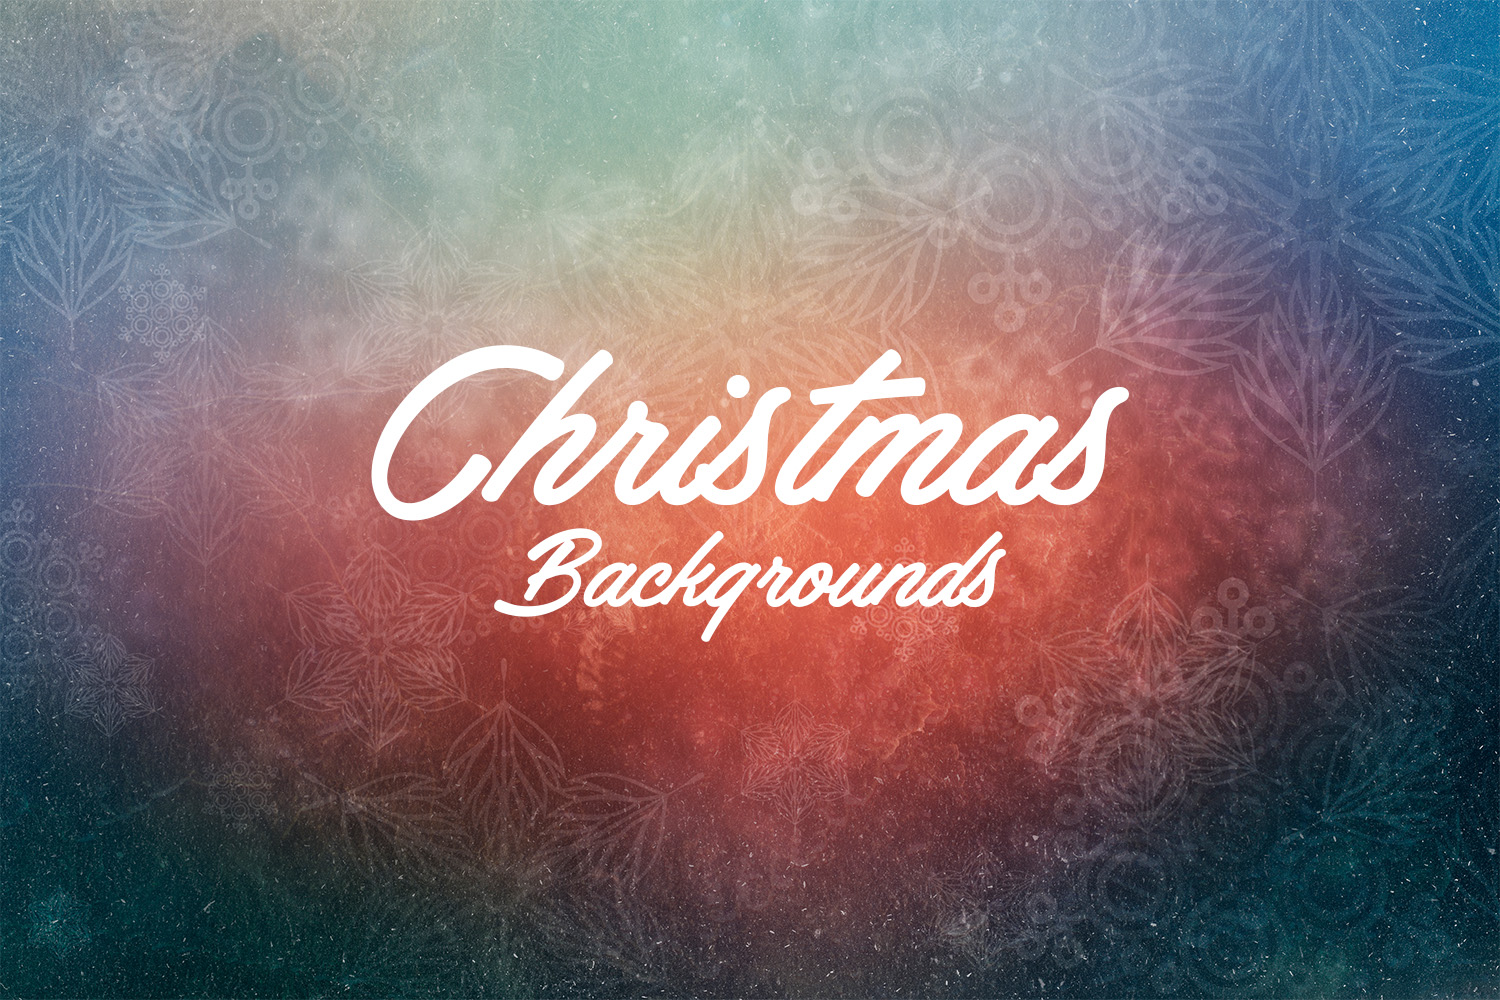 Download Free Christmas Backgrounds Graphic By Freezerondigital Creative Fabrica for Cricut Explore, Silhouette and other cutting machines.